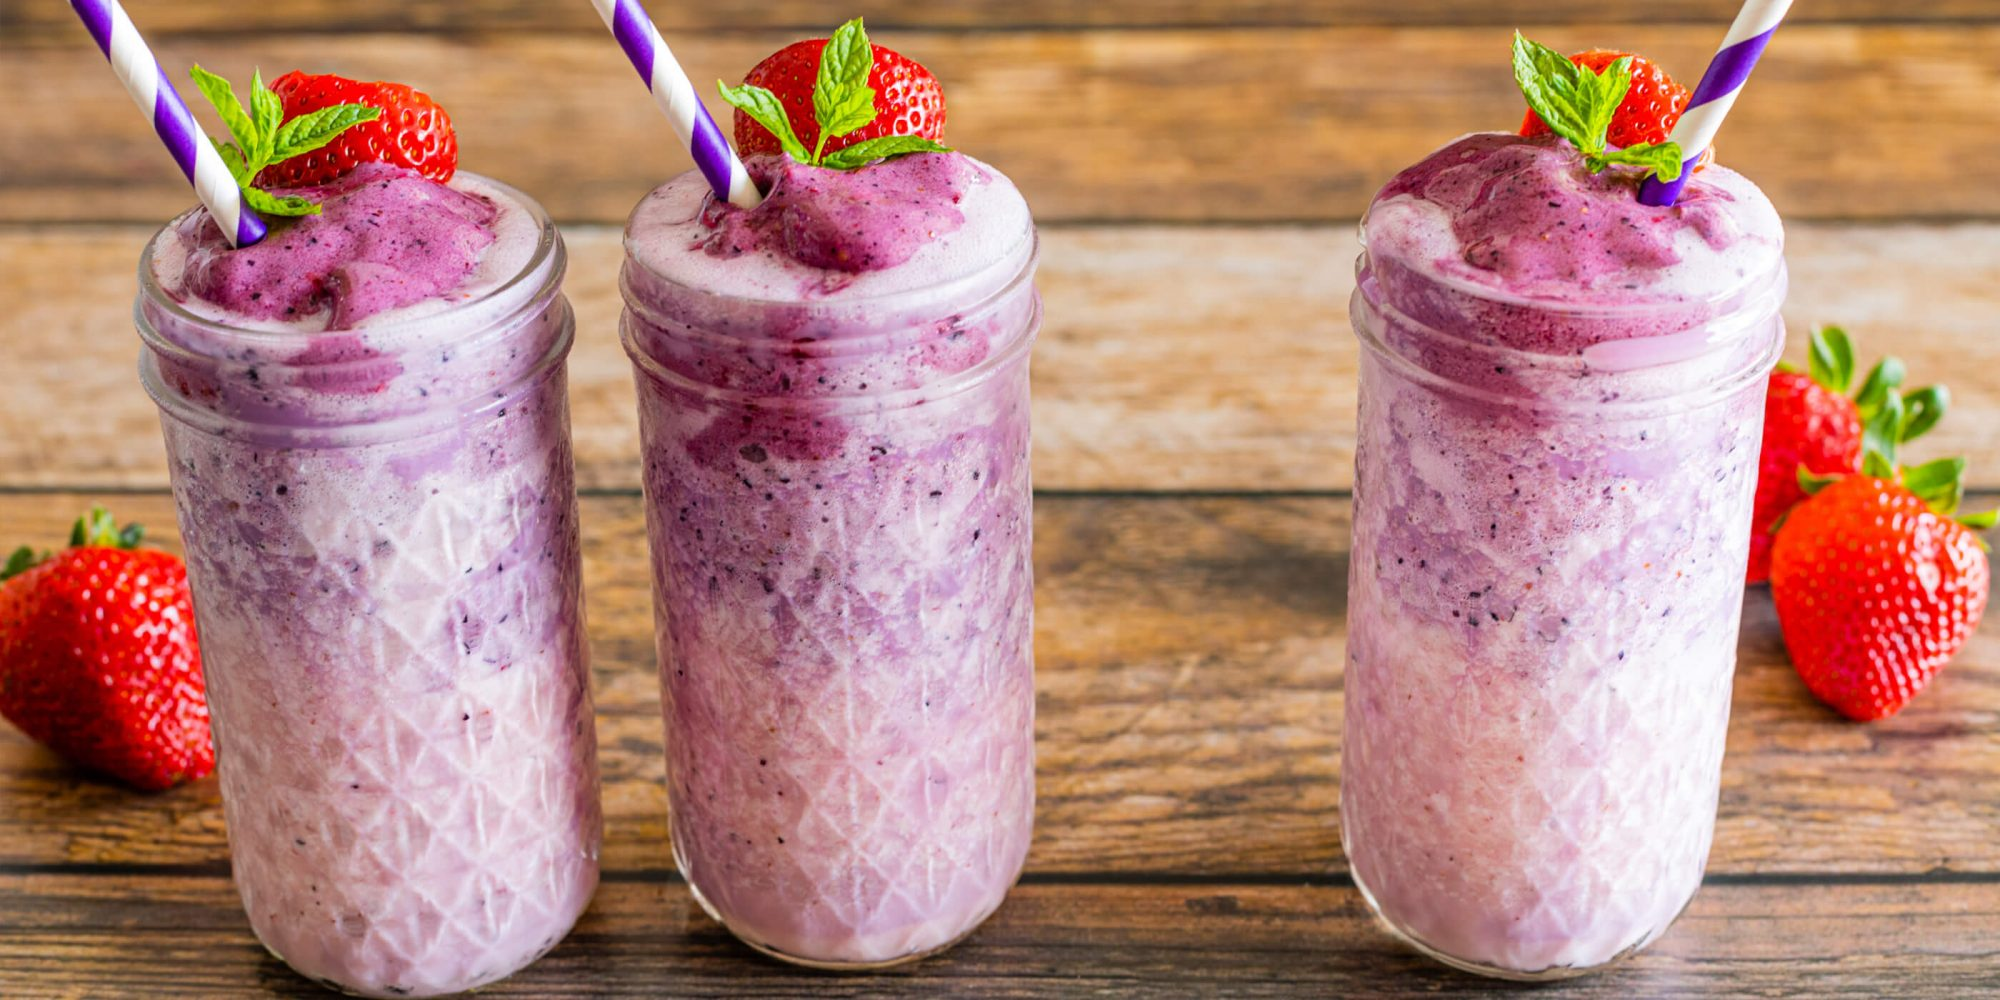 Ombre Berry Smoothie